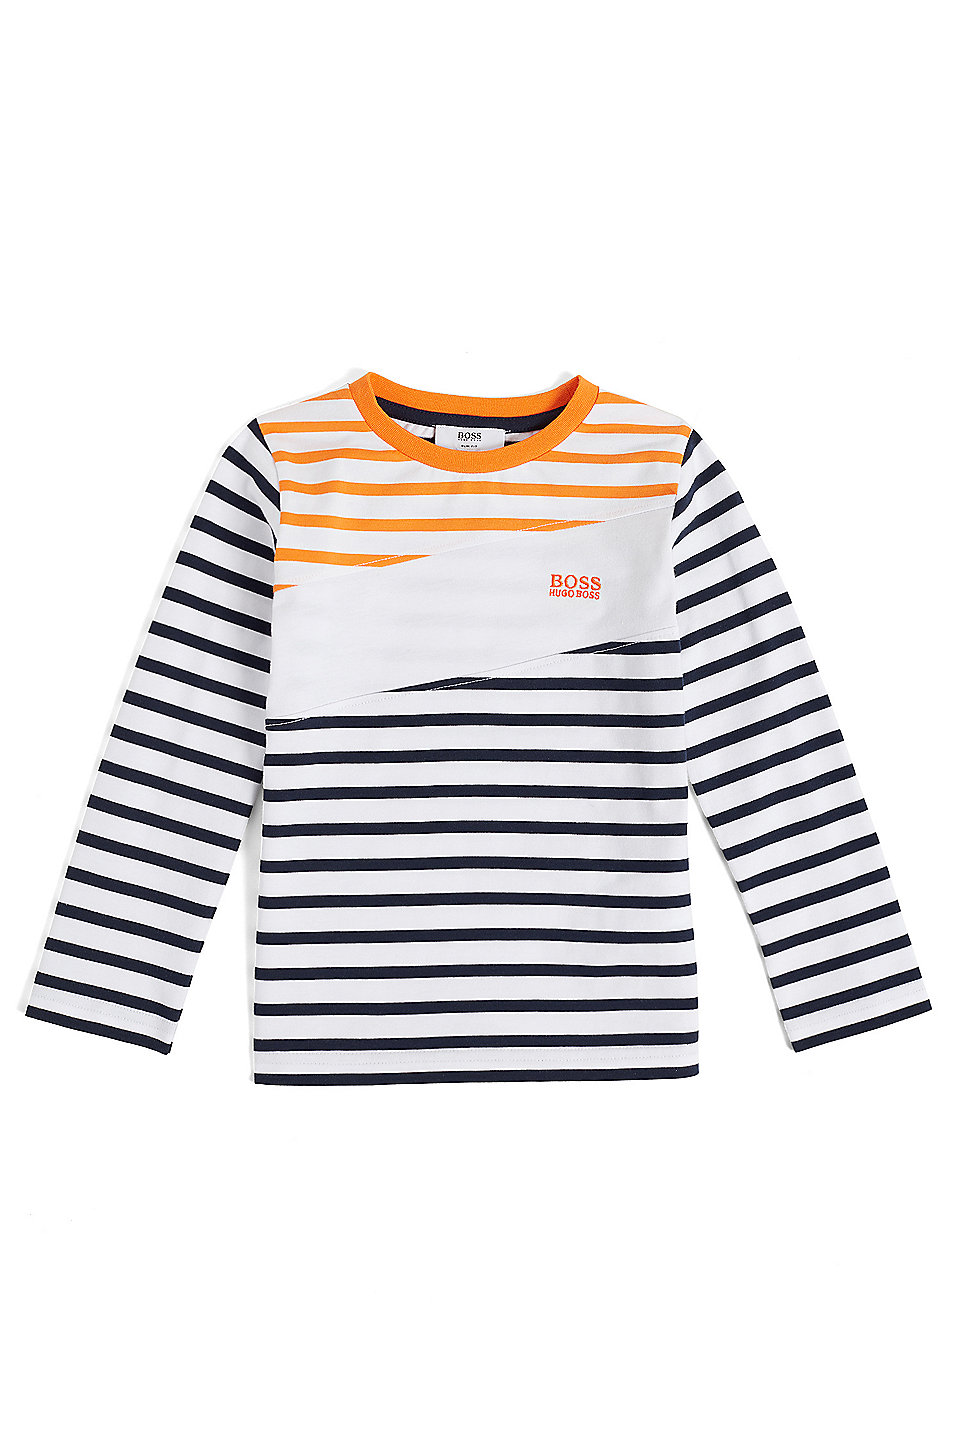 84116732bf BOSS - Kids' long-sleeved T-shirt with stripes and asymmetric block